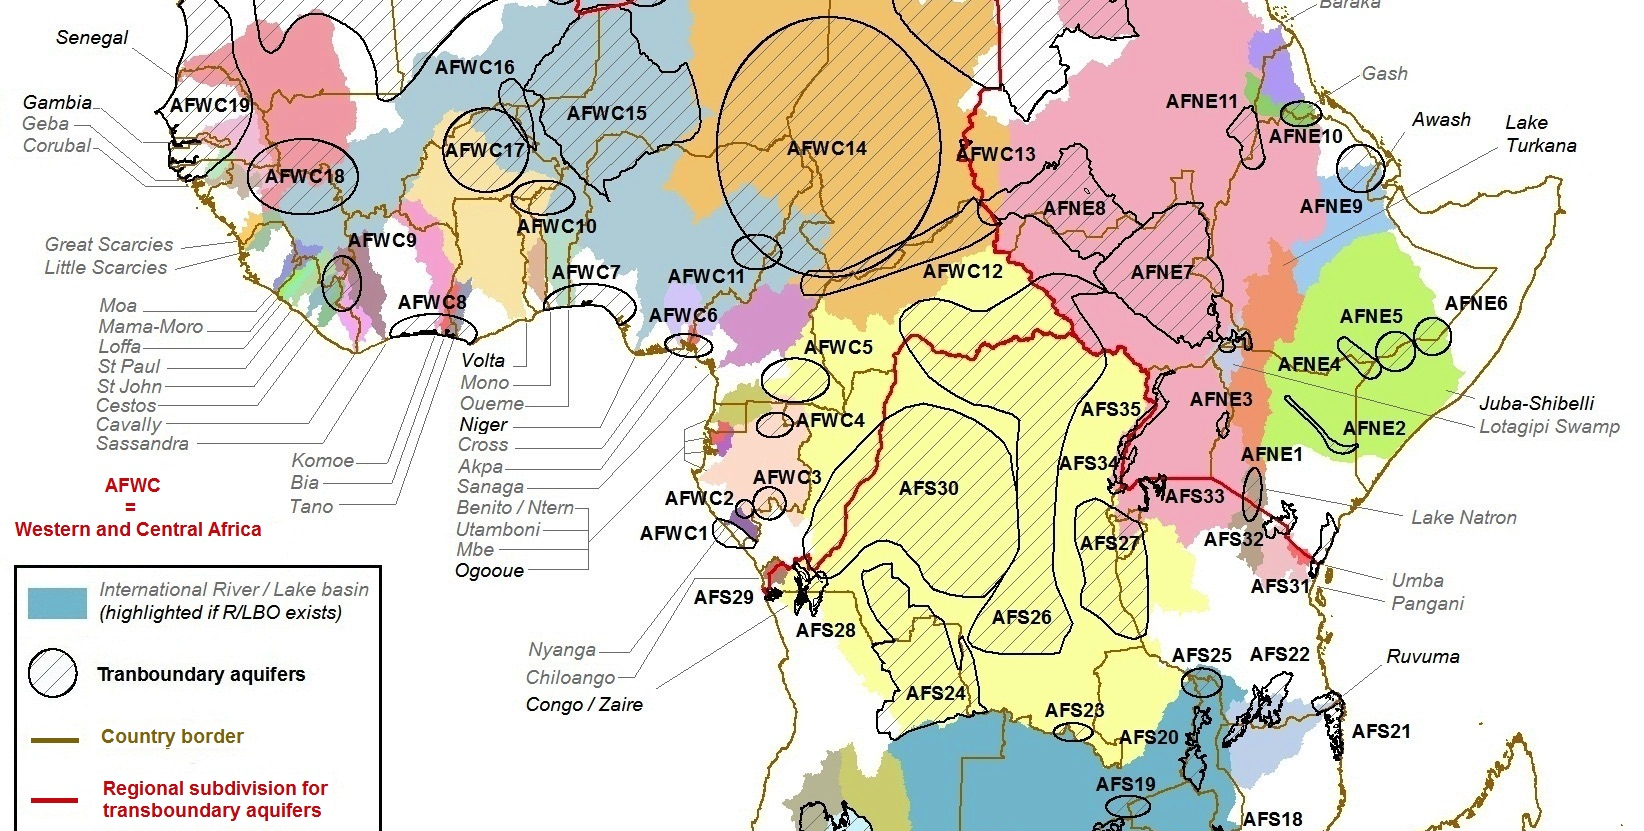 Transboundary Aquifer Map for Africa   Water, Land and ...